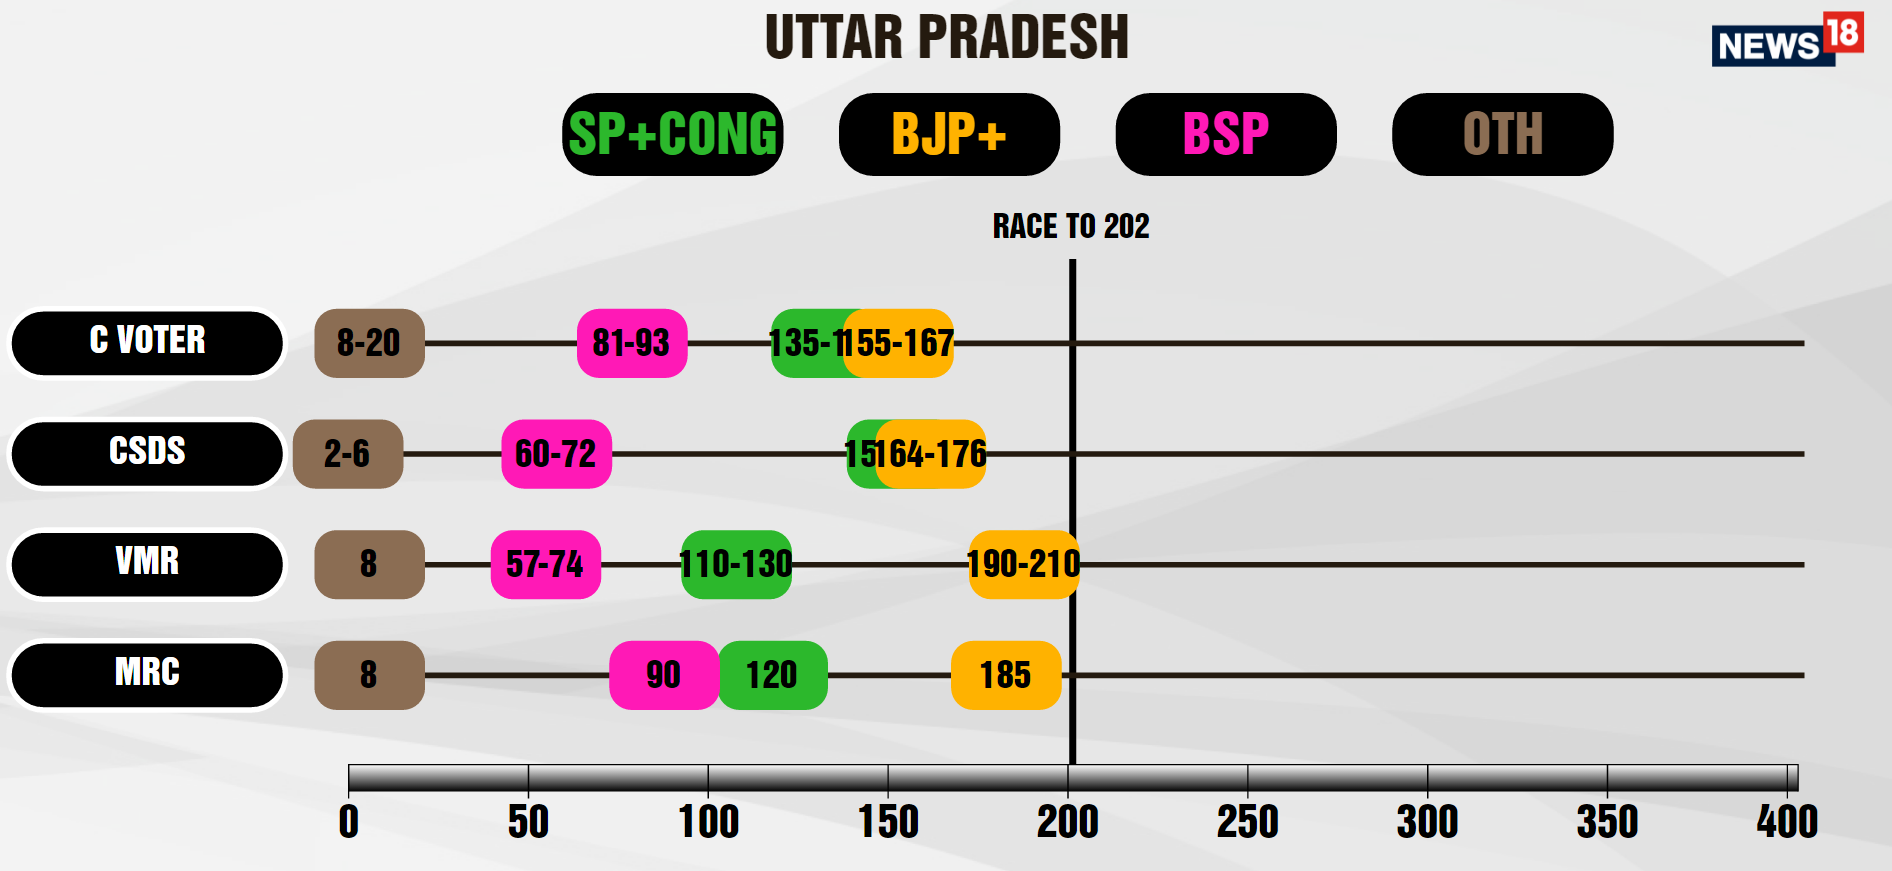 With no end to feud mulayam akhilesh yadav look for life beyond the cycle economic times - What Major Polling Agencies Have To Say About Up Results The Big Tally At A Glance